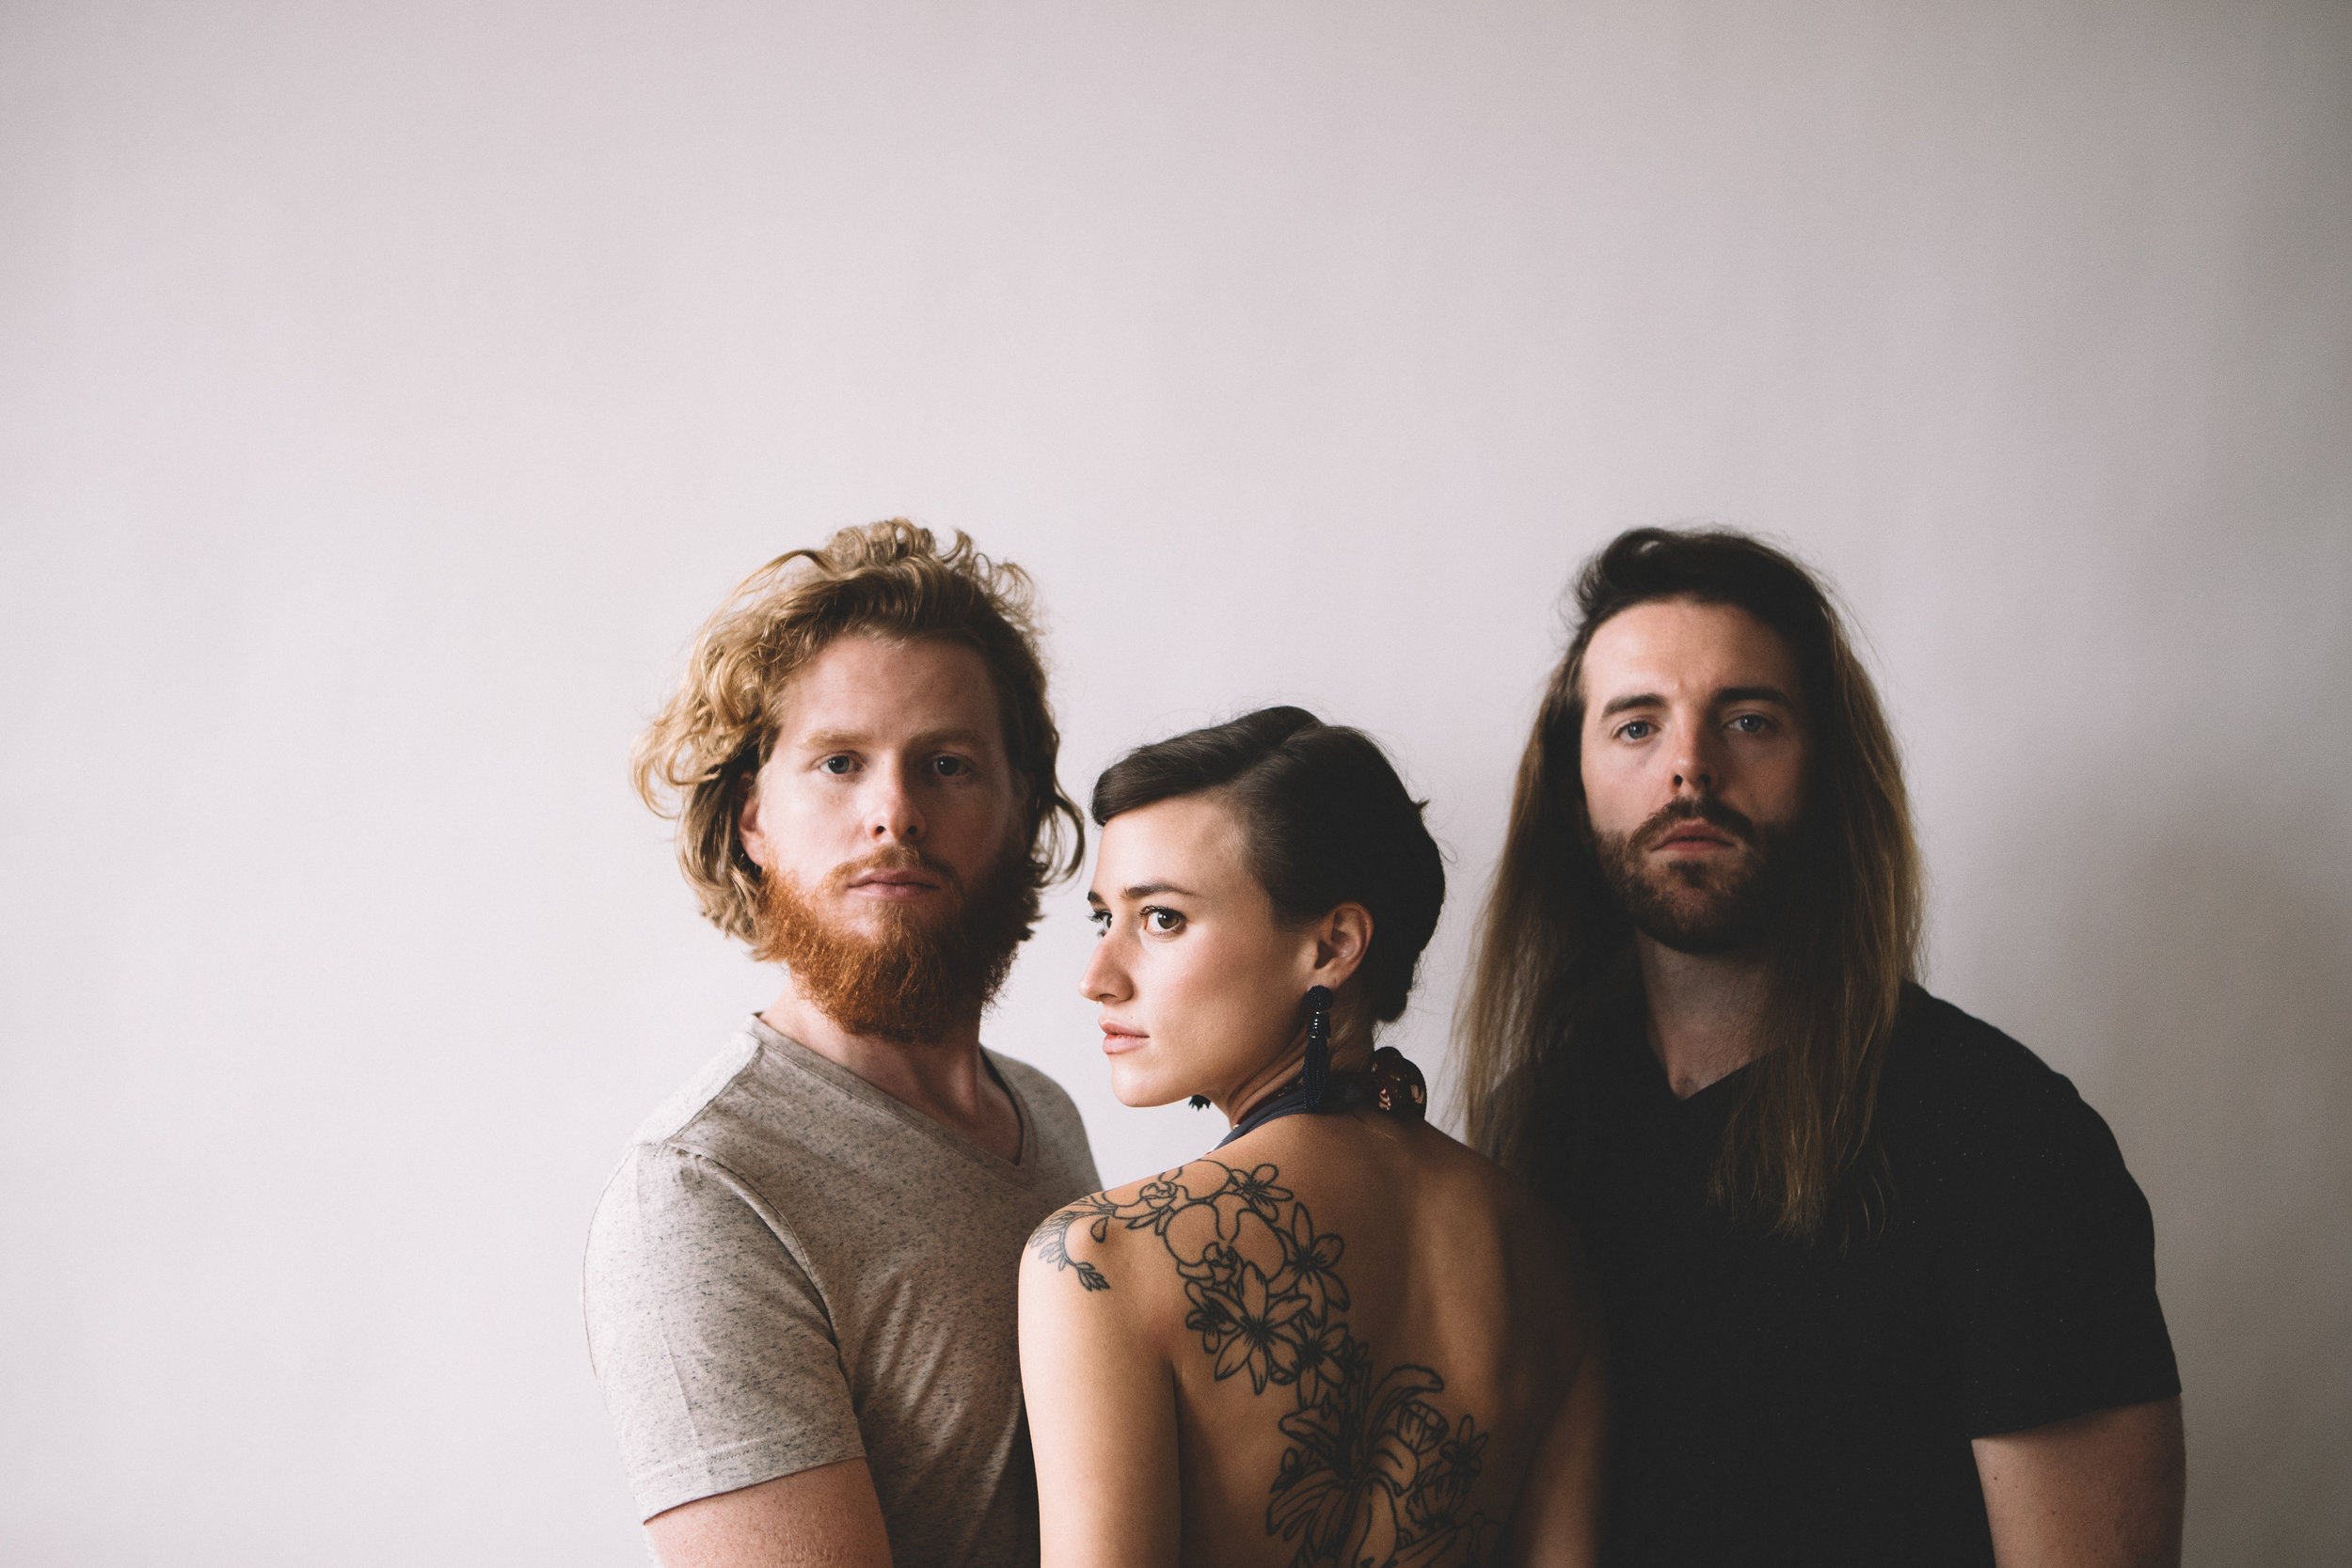 Ballroom Thieves - July 7th, 2019